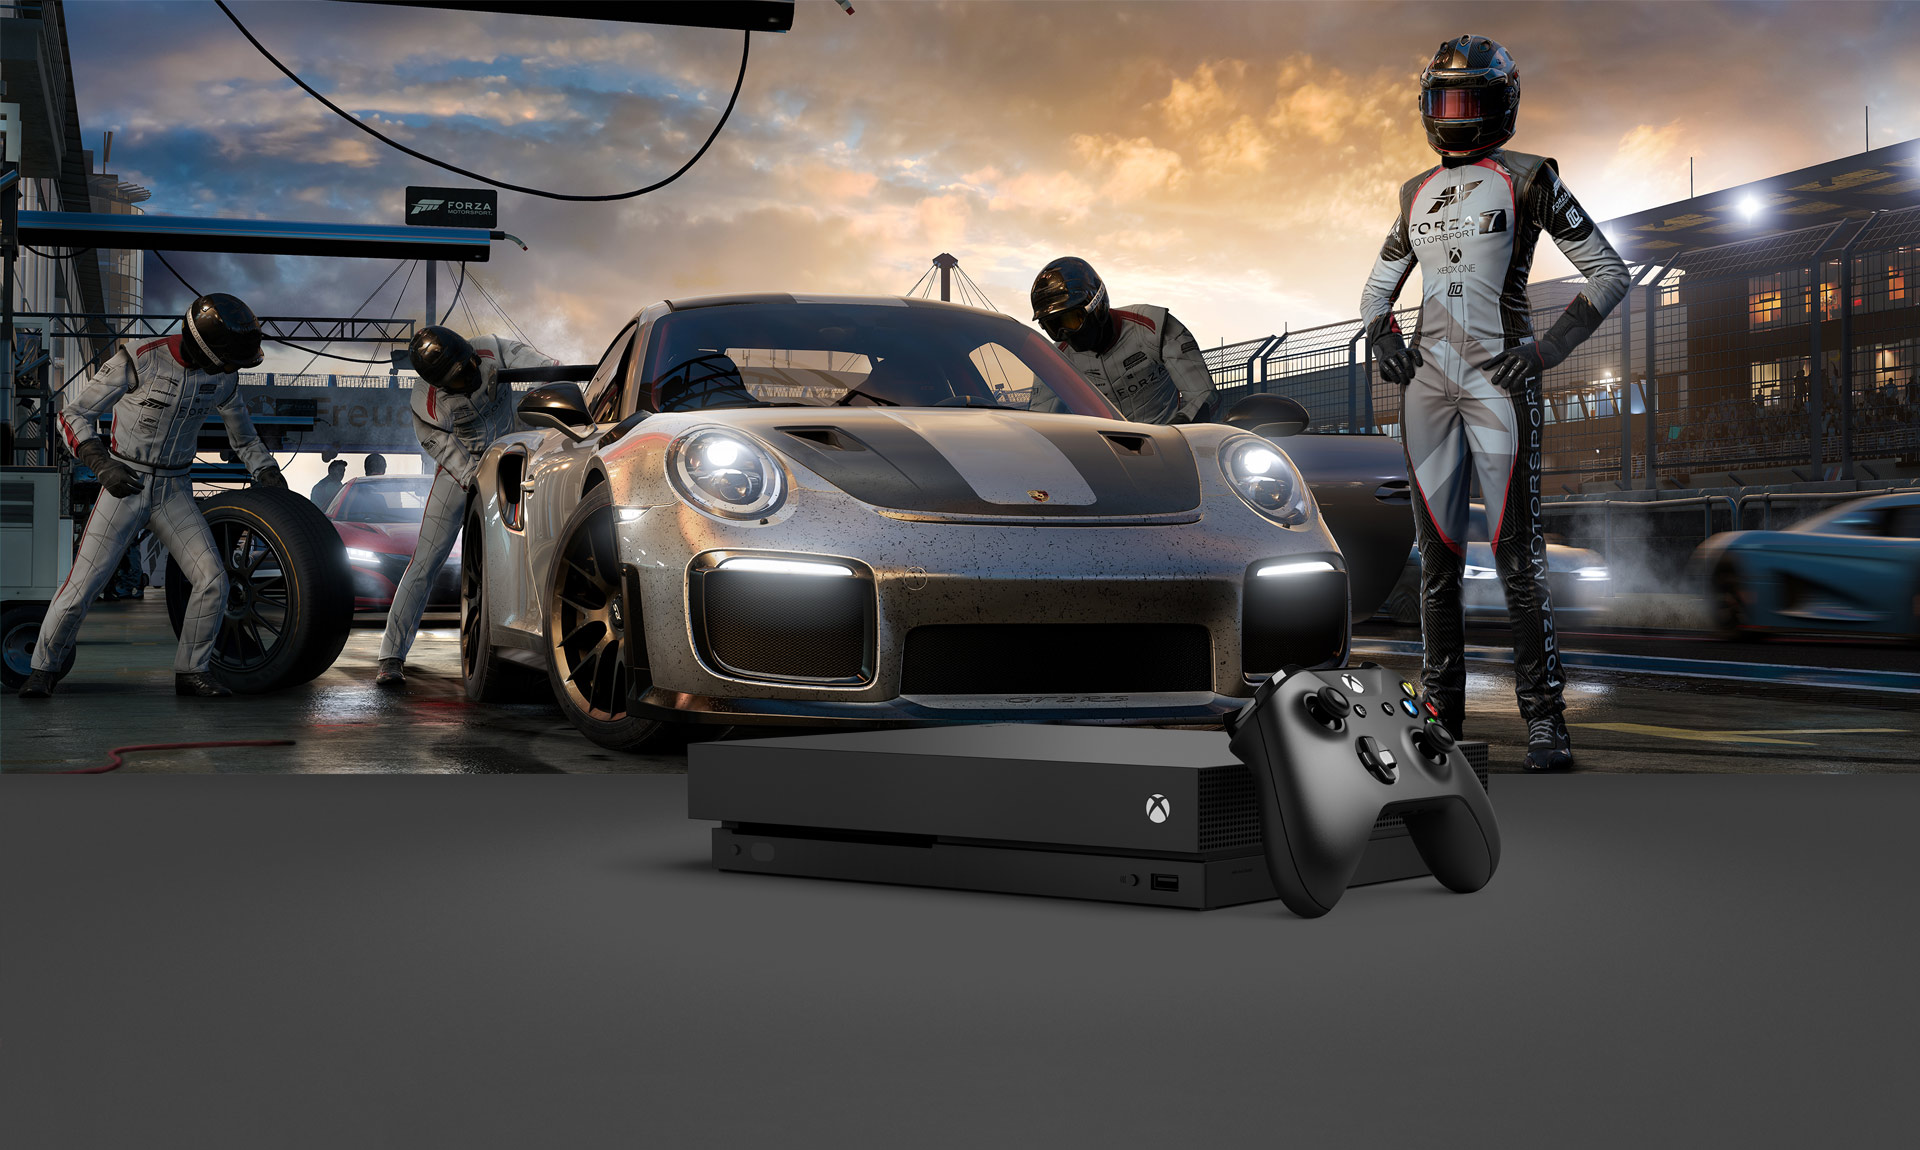 Xbox one X with Porsche GT2 RS at a pit stop in the background